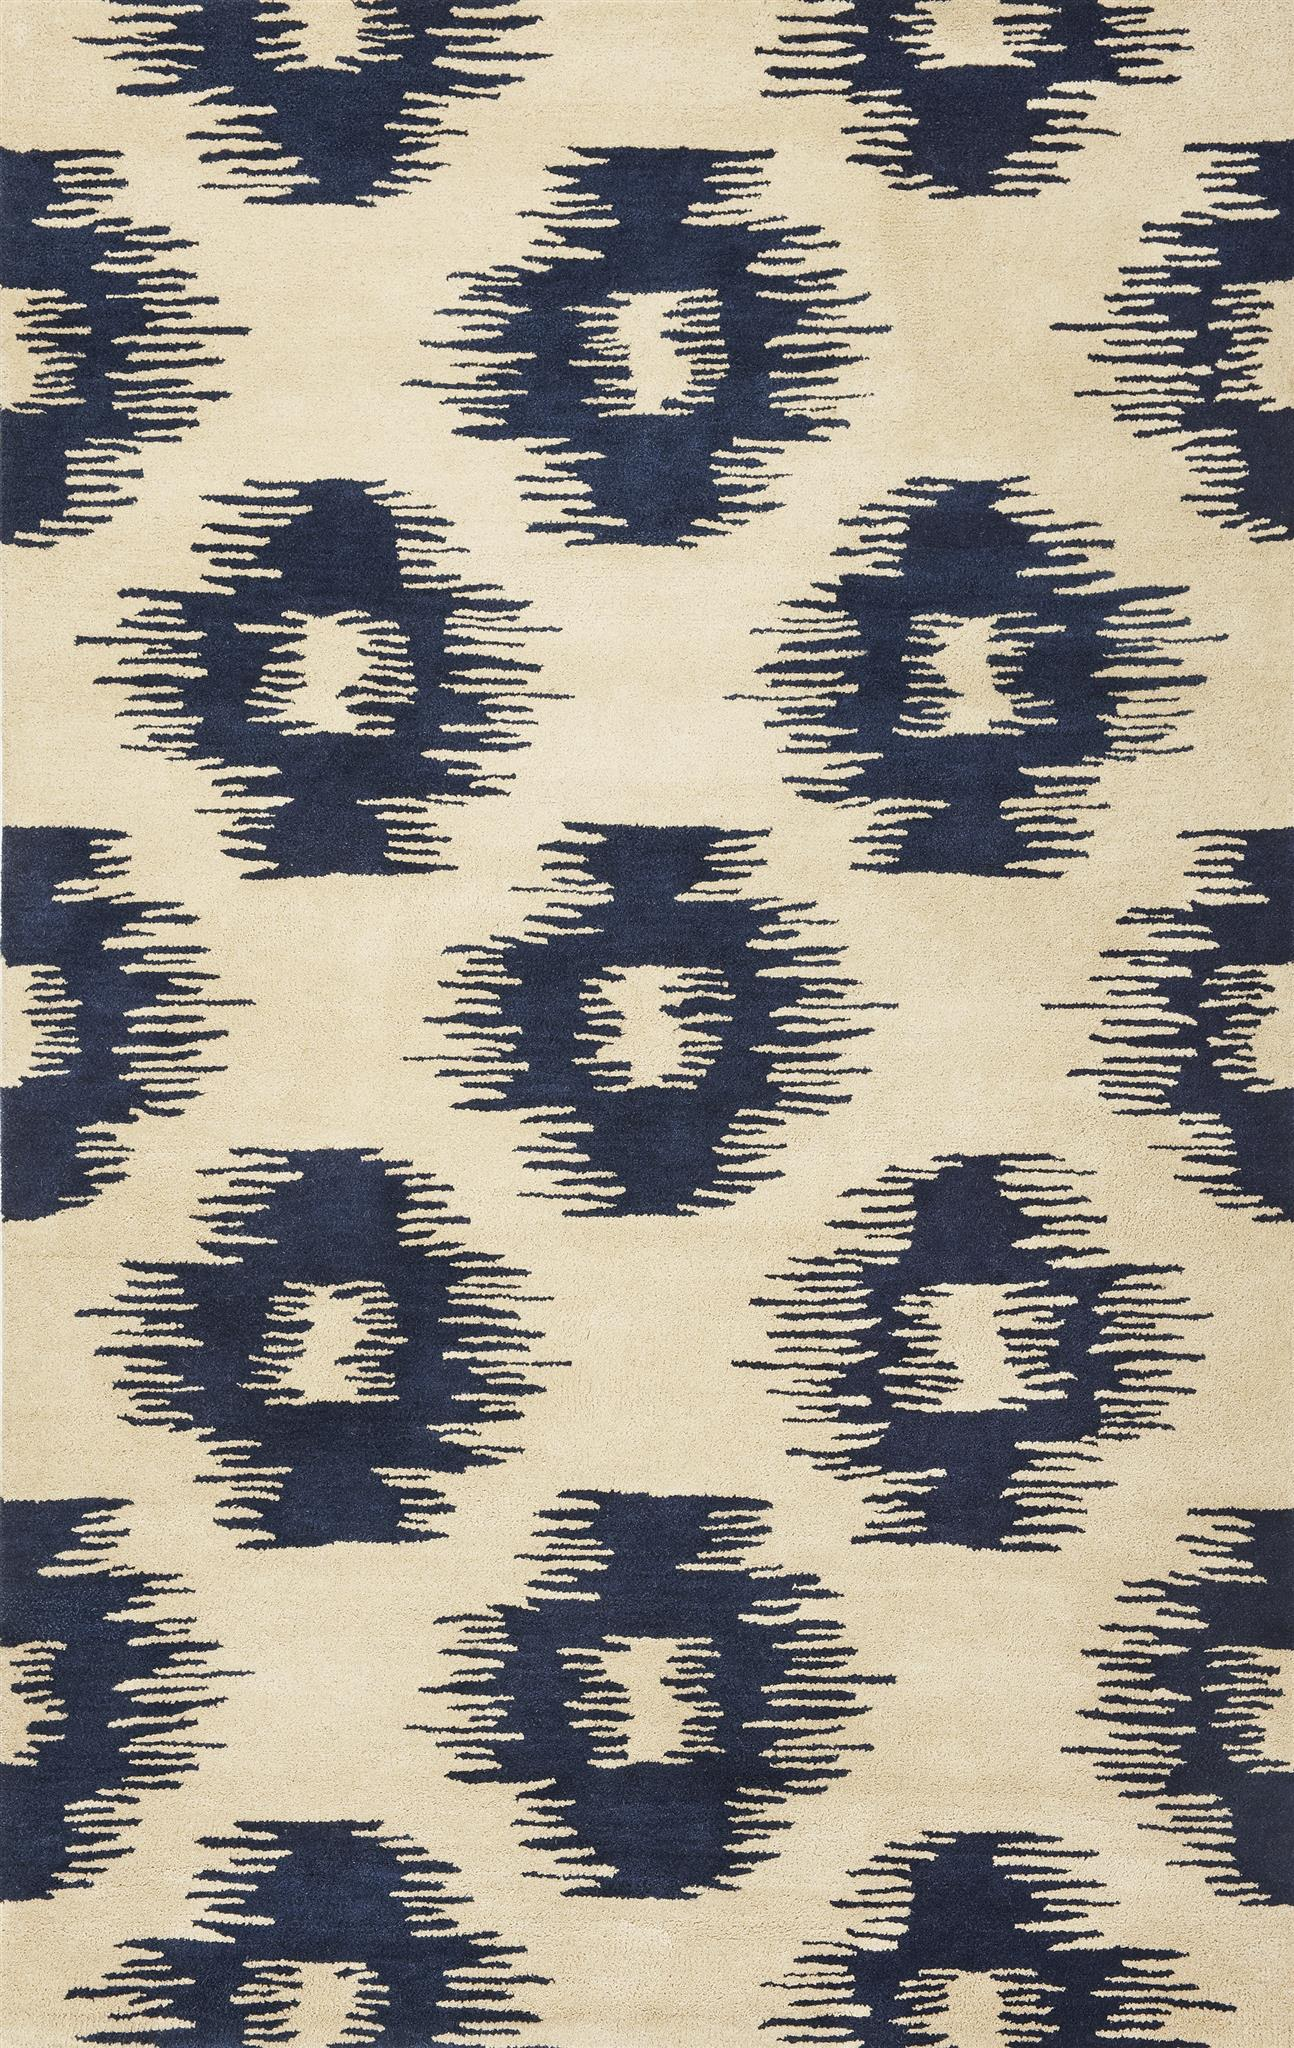 Tapestry 6801 Ivory/Blue Simplicity